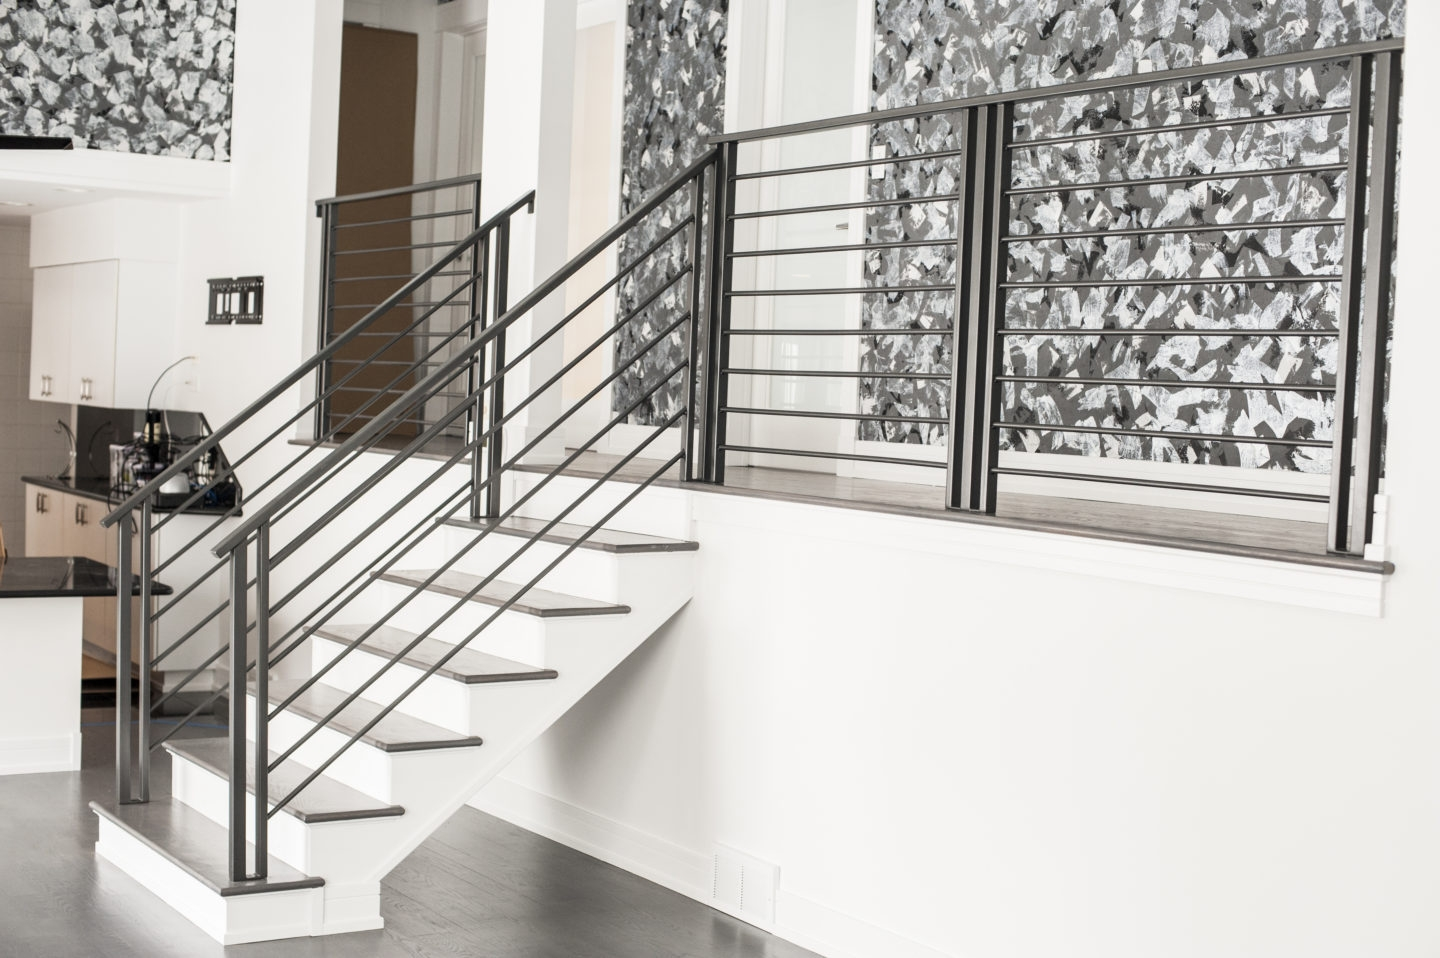 Looking For Custom Urban Modern Residential Horizontal Bar Type | Contemporary Wrought Iron Railings | Victorian | Stainless Steel | Glass | Wood | Decorative